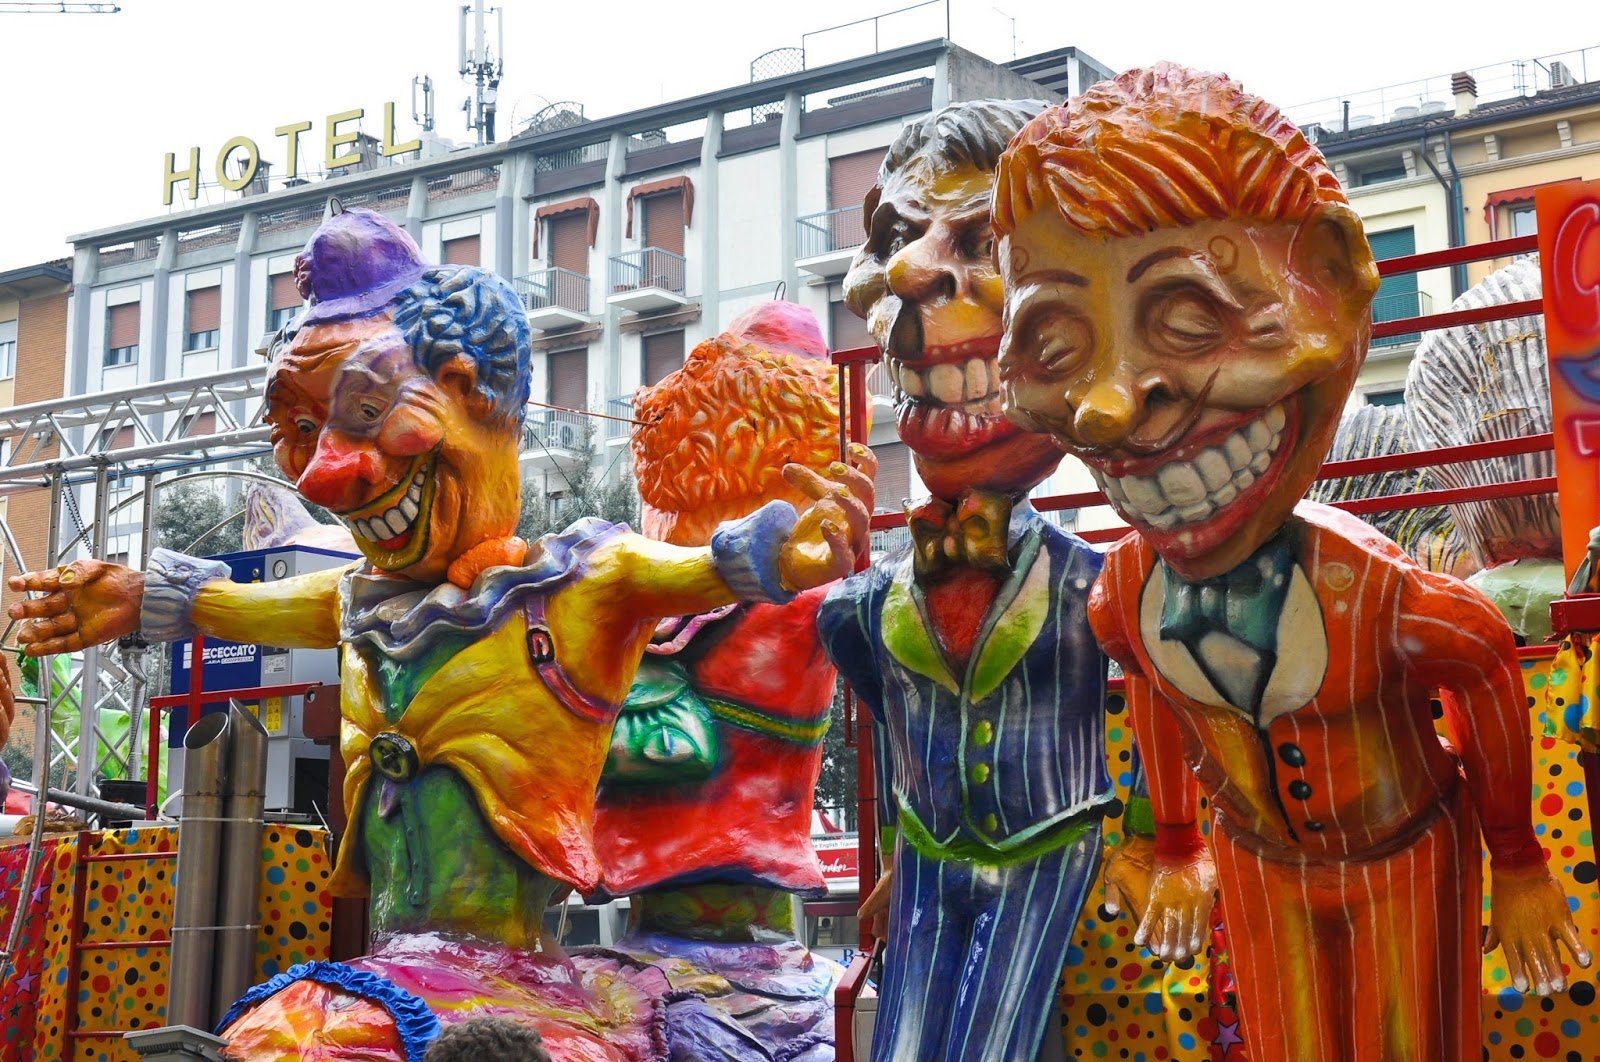 Large figures made of papier mache on a float at the Carnival in Verona